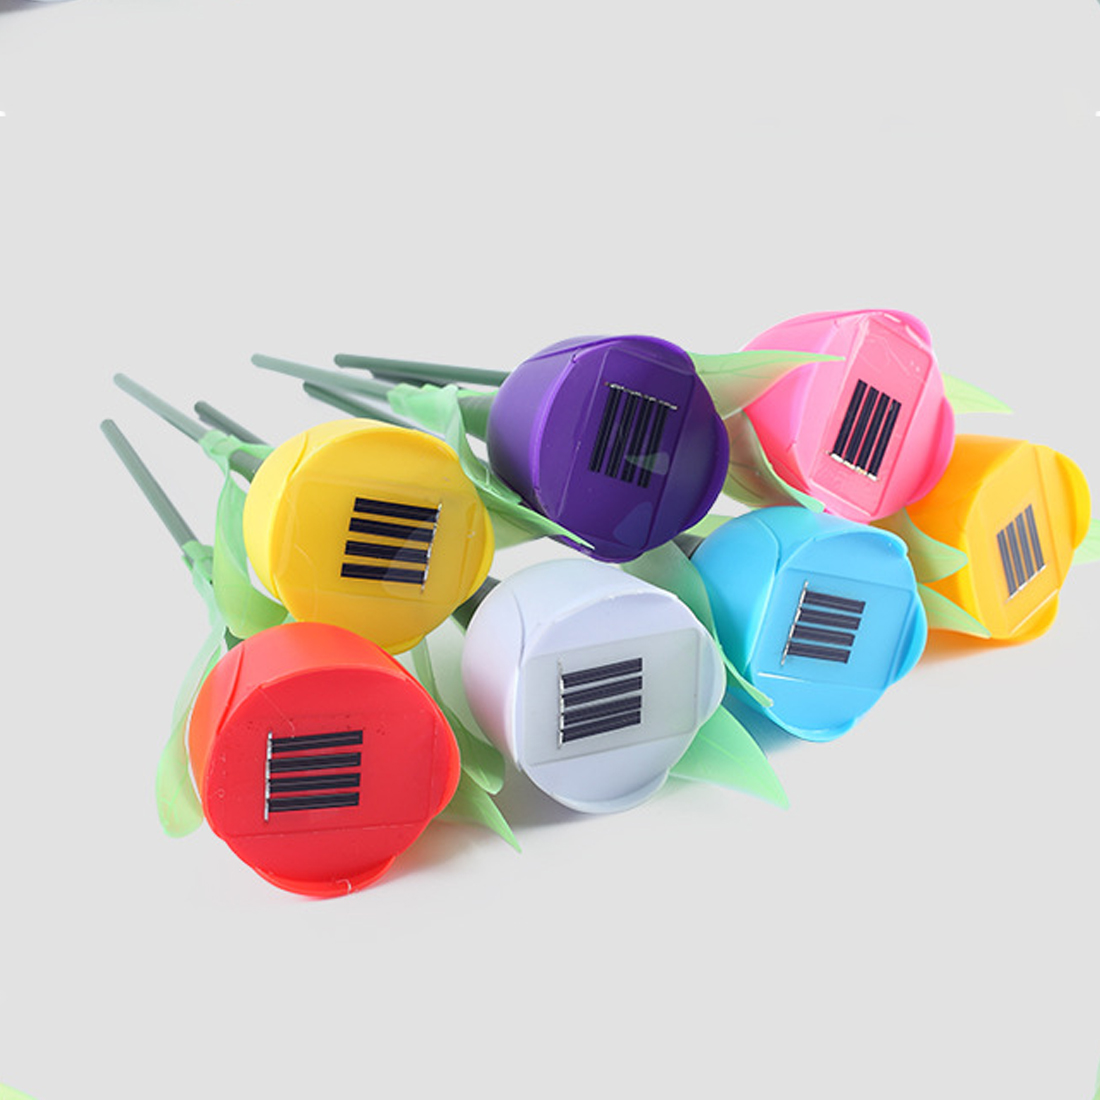 Outdoor Solar Power LED Lawn Colorful Tulip Flowers Lamp Light For Yard Garden Lawn Pathway Landscape Decoration